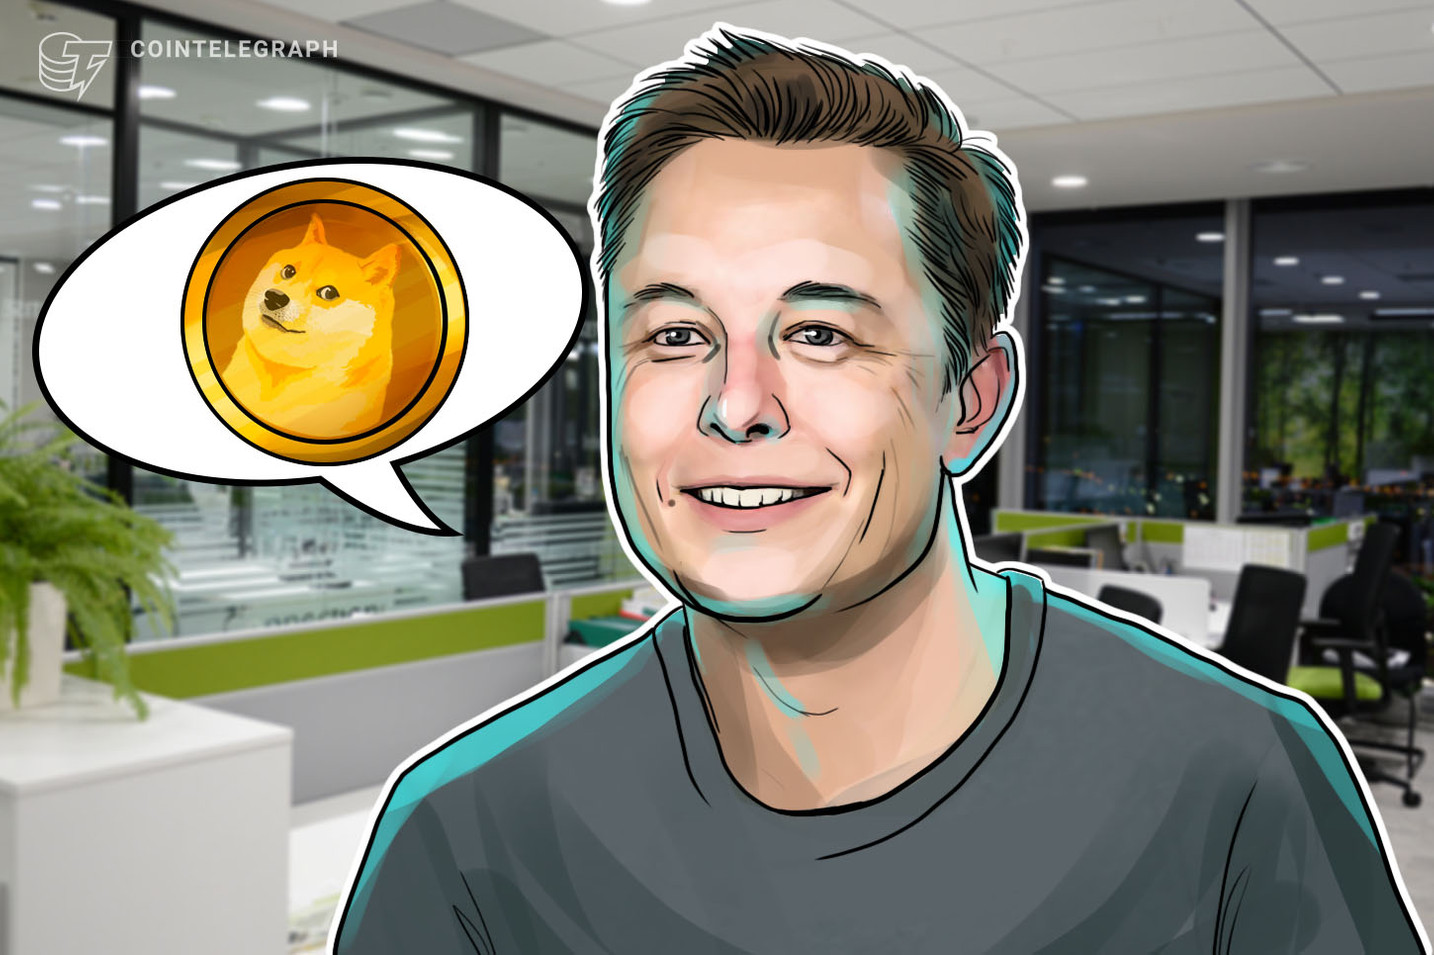 Elon Musk Voices Support for Dogecoin After Recent Bitcoin Bashing